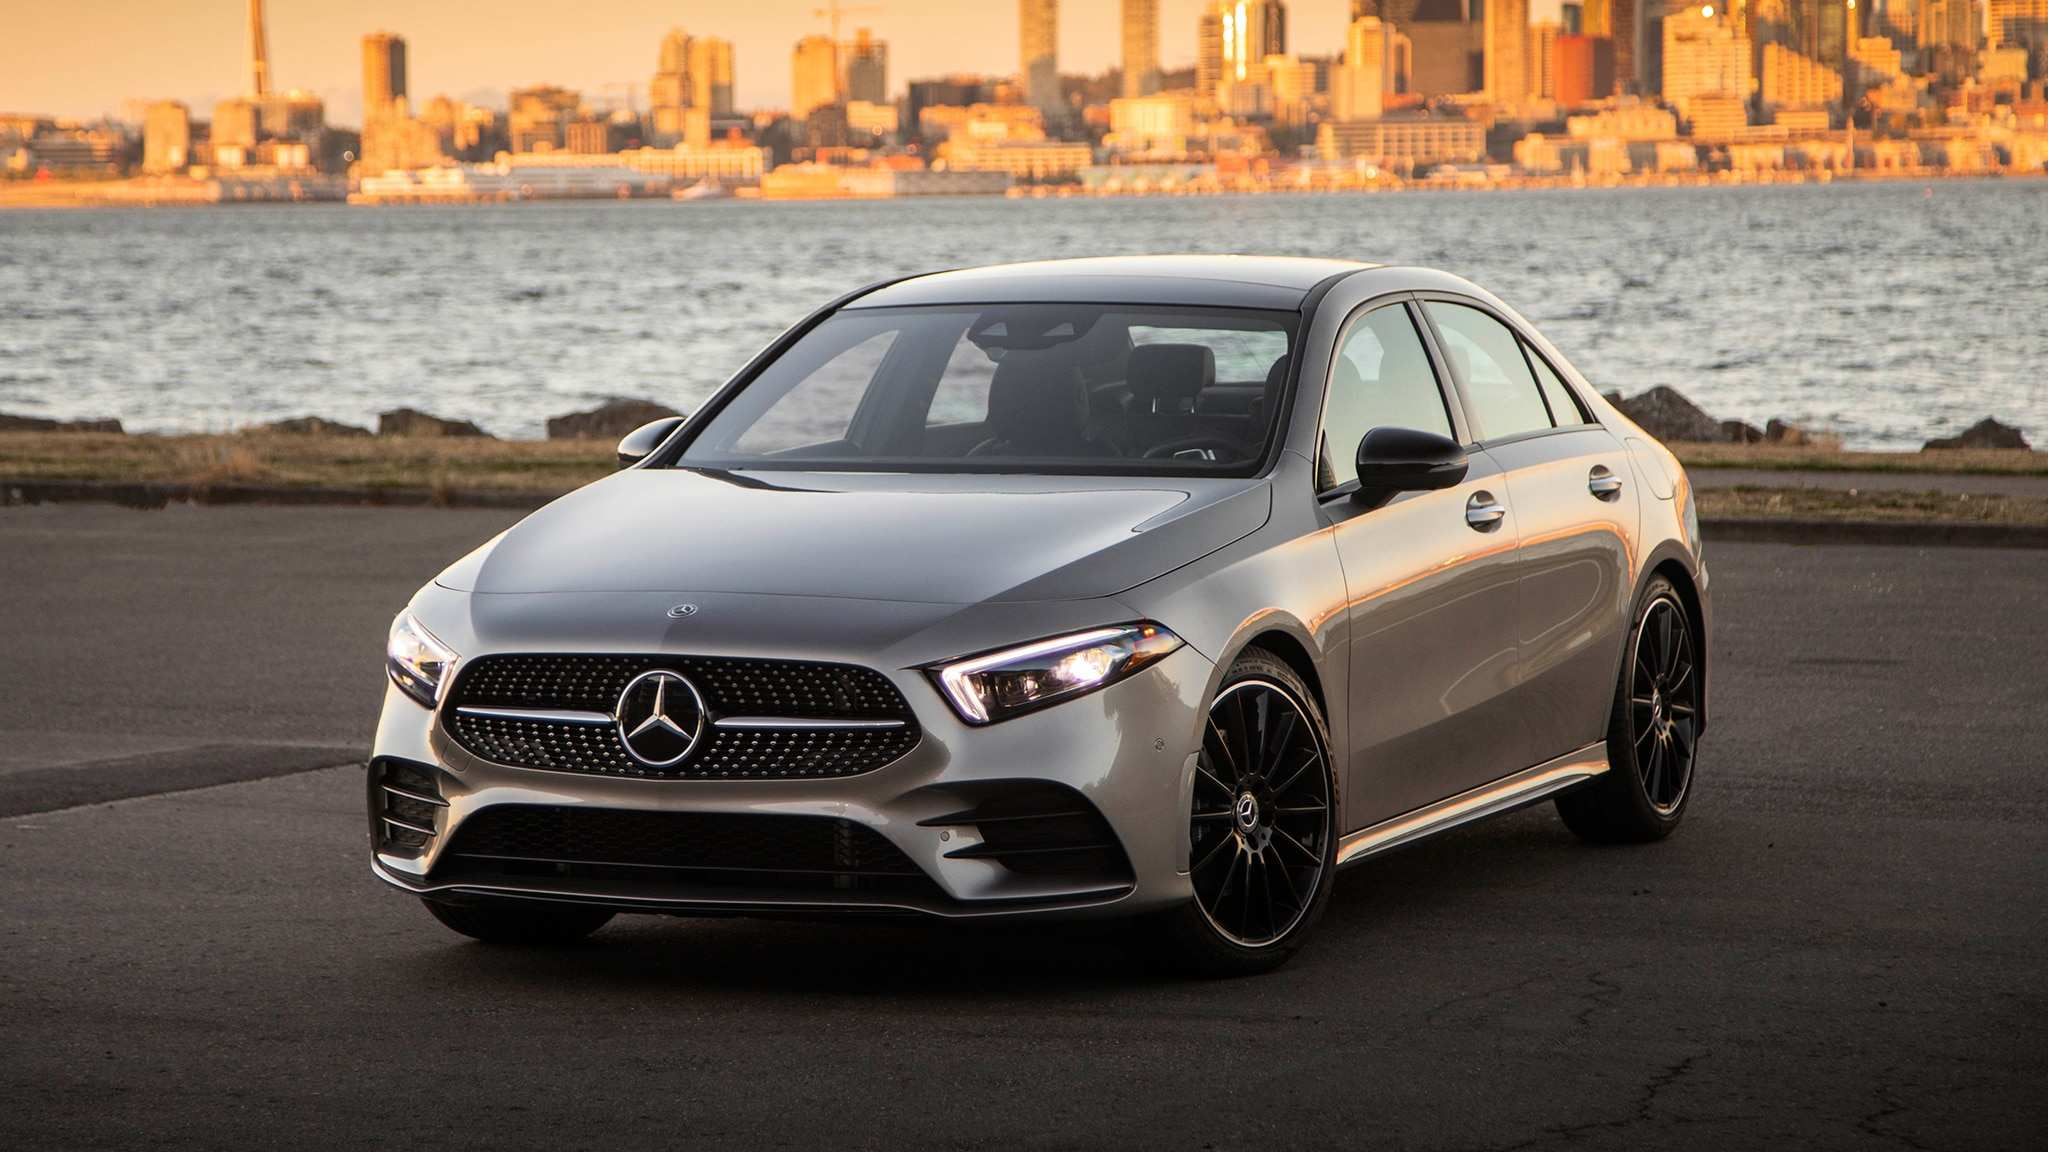 22 All New Mercedes A Class 2019 Price Exterior